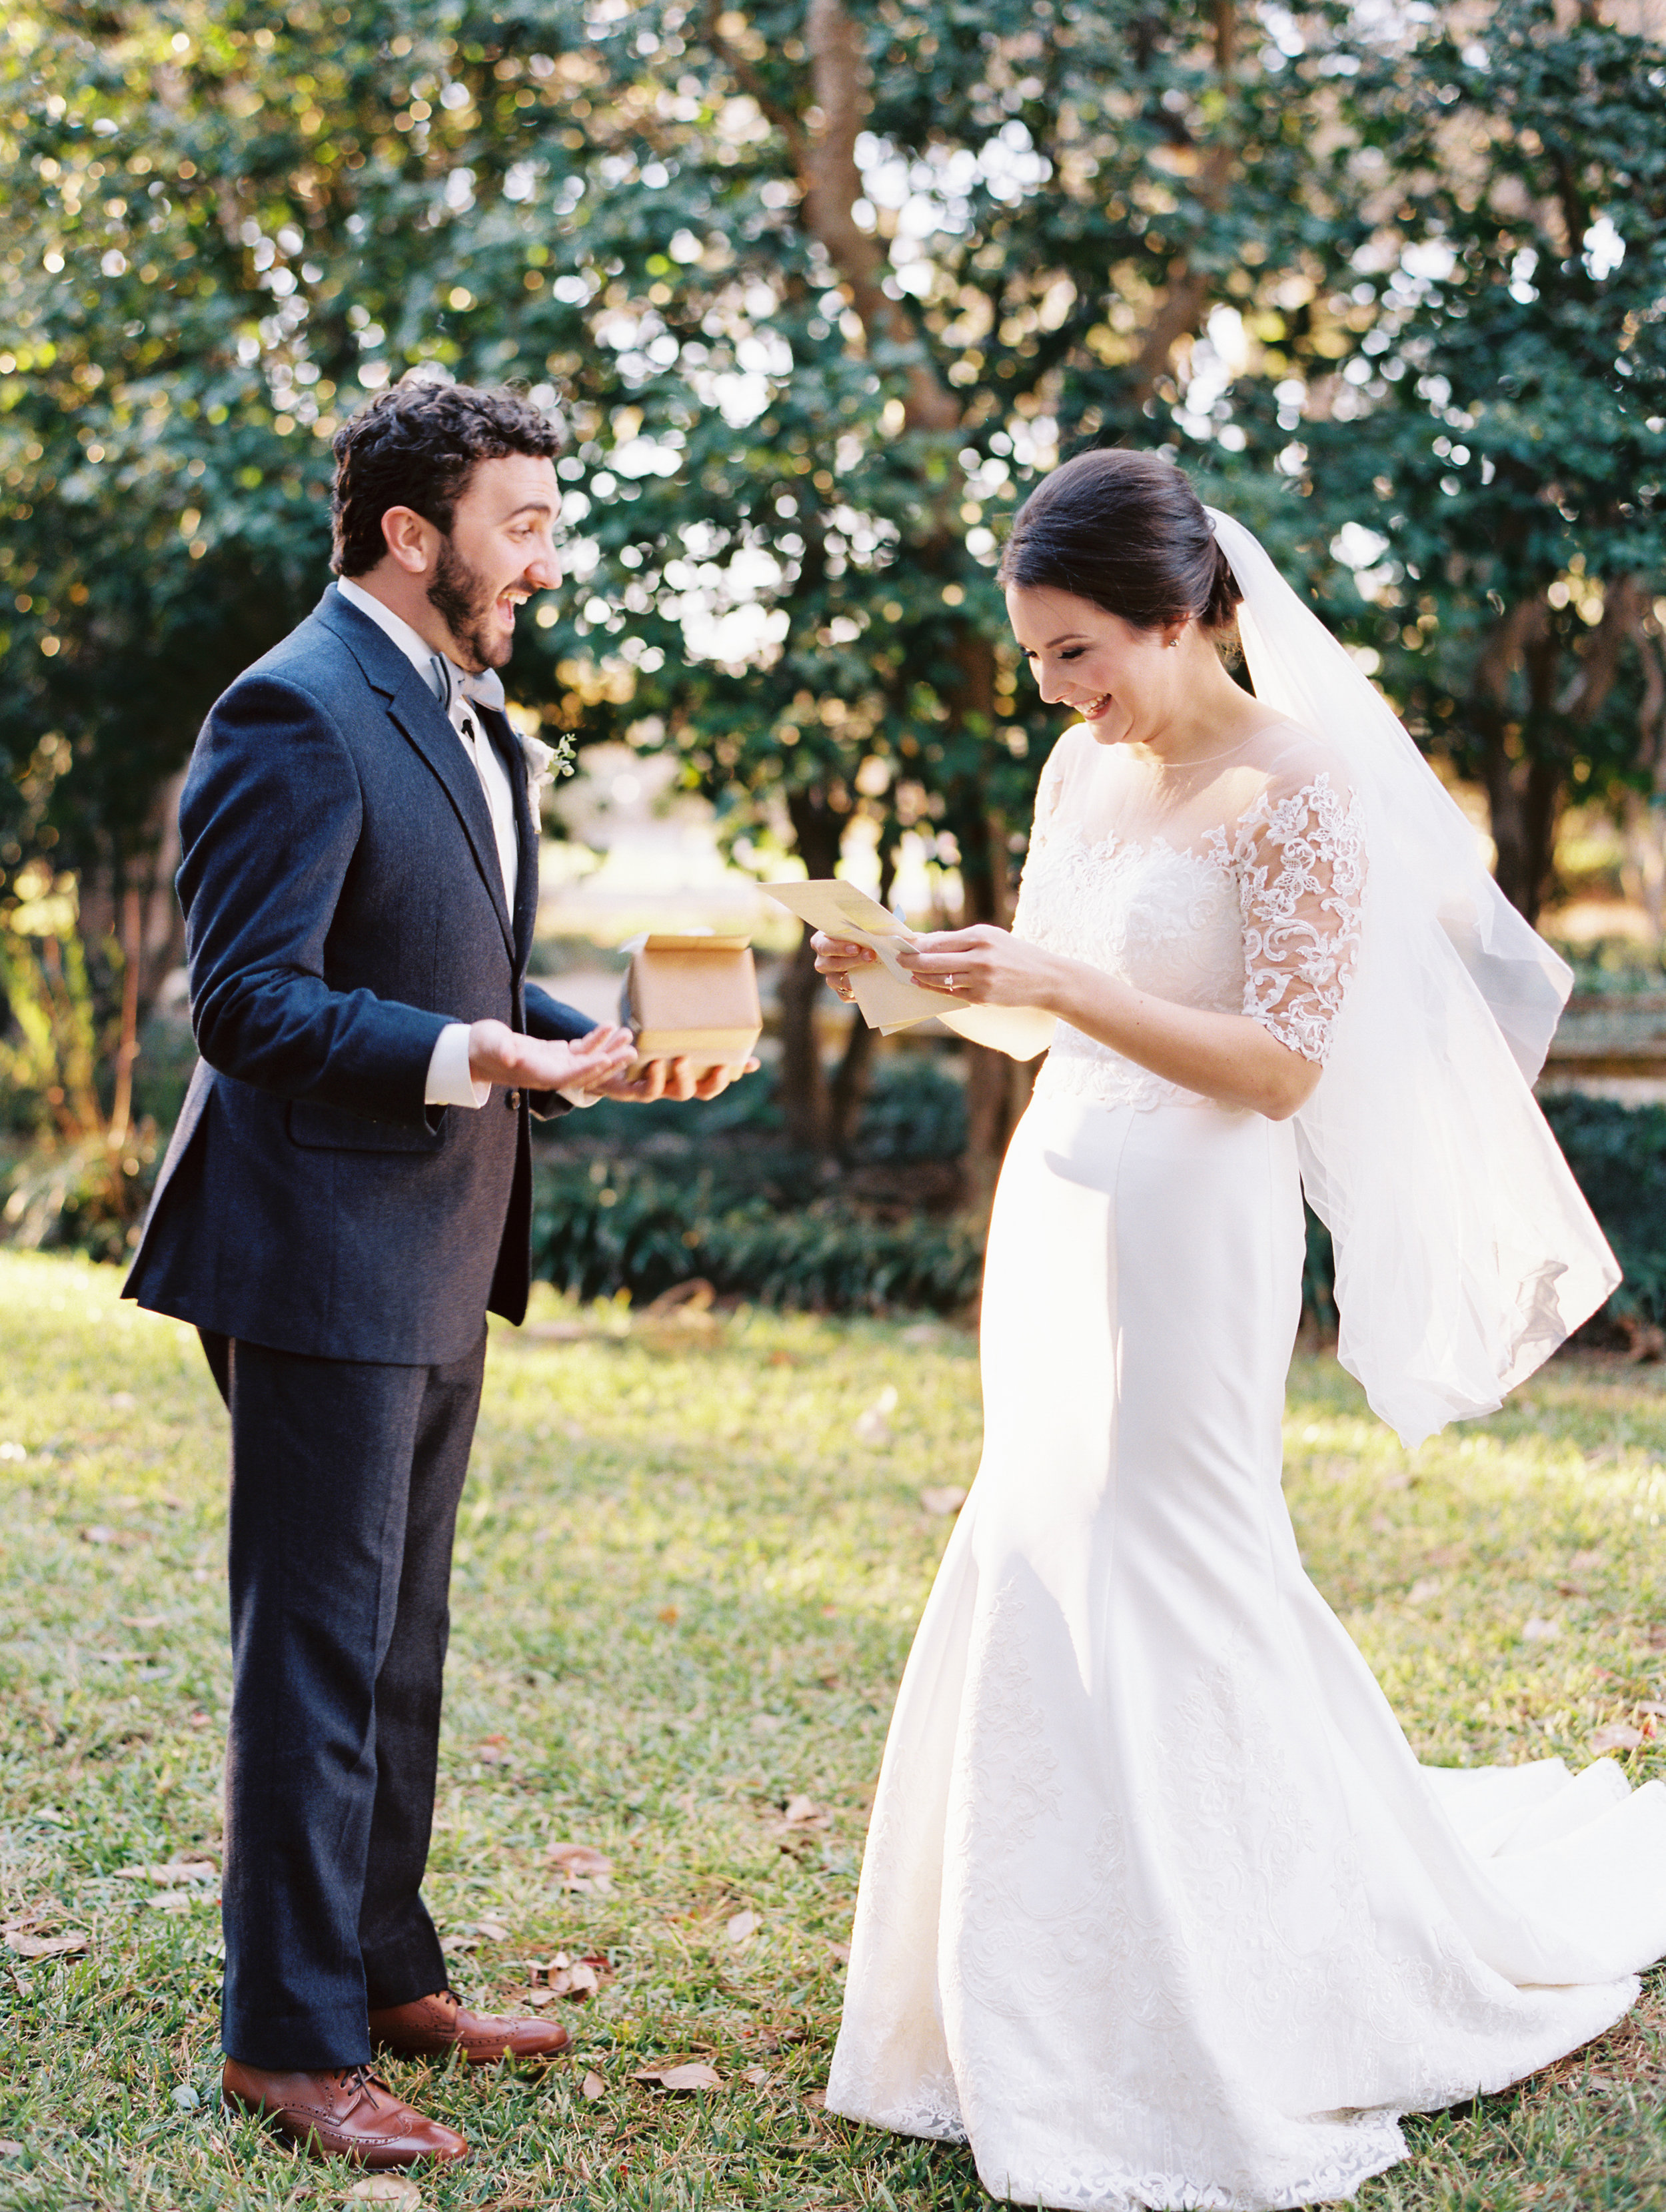 Southern Fete, Southern Wedding, Bride and Groom First Look, Notes to each other, Sarah Beth Photography